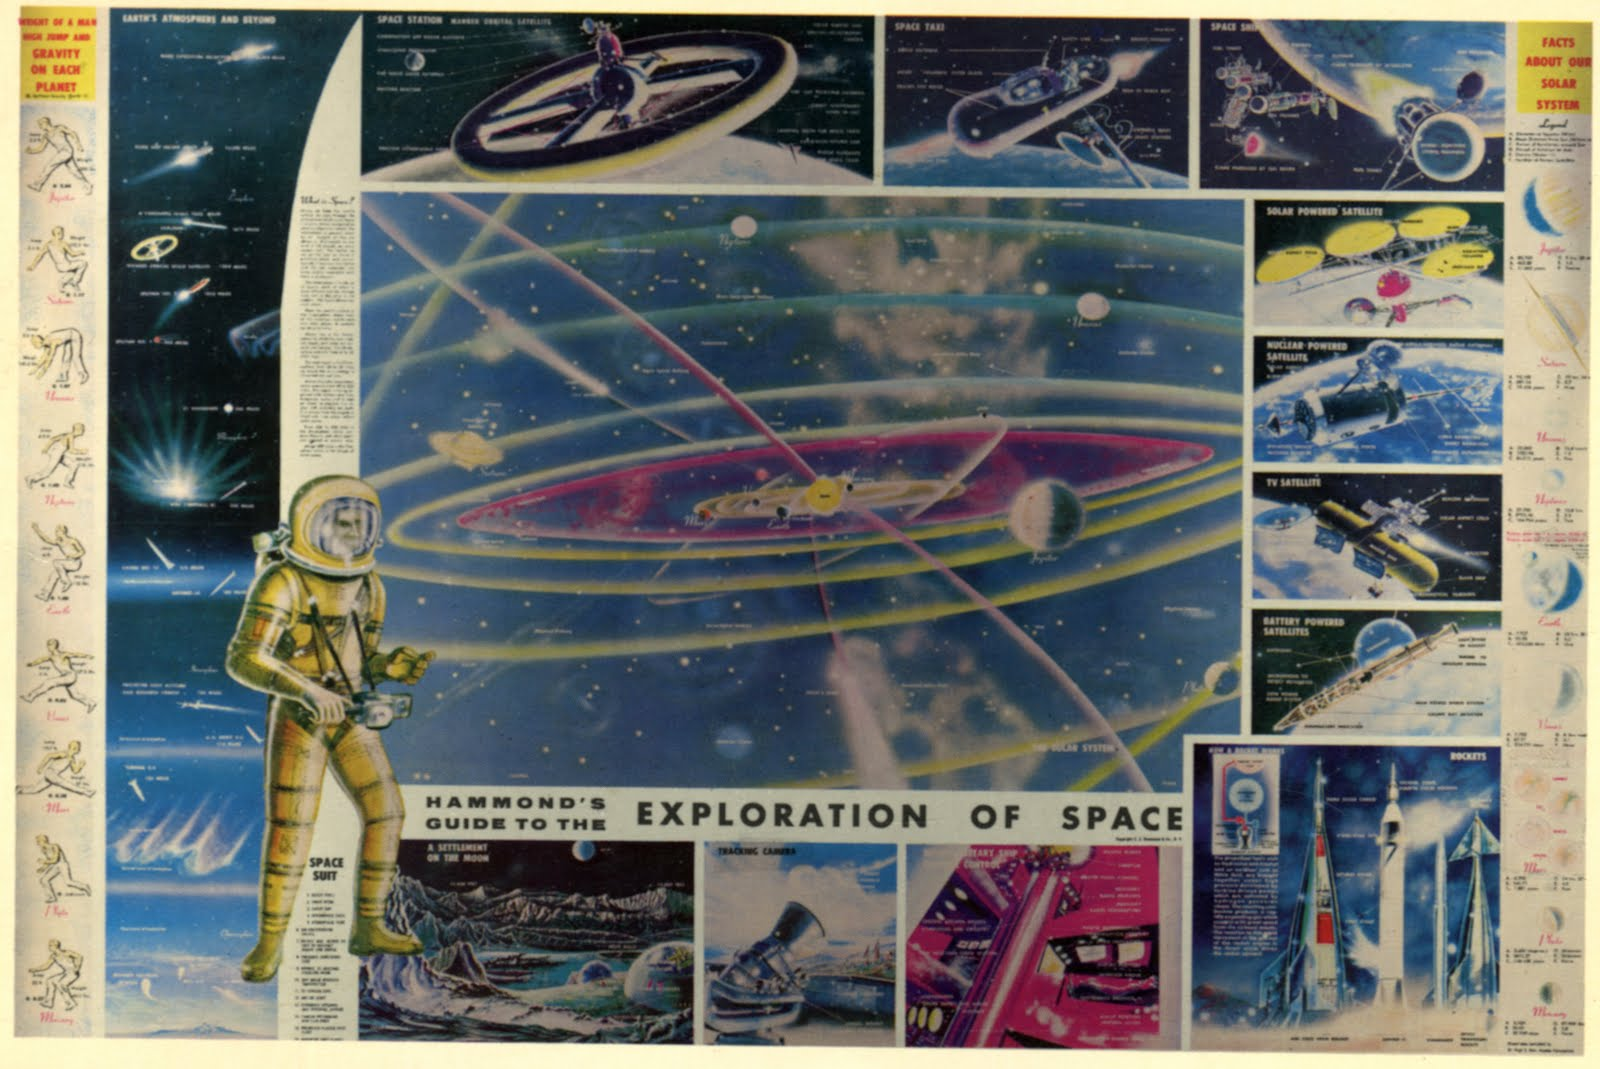 1958 space exploration -#main